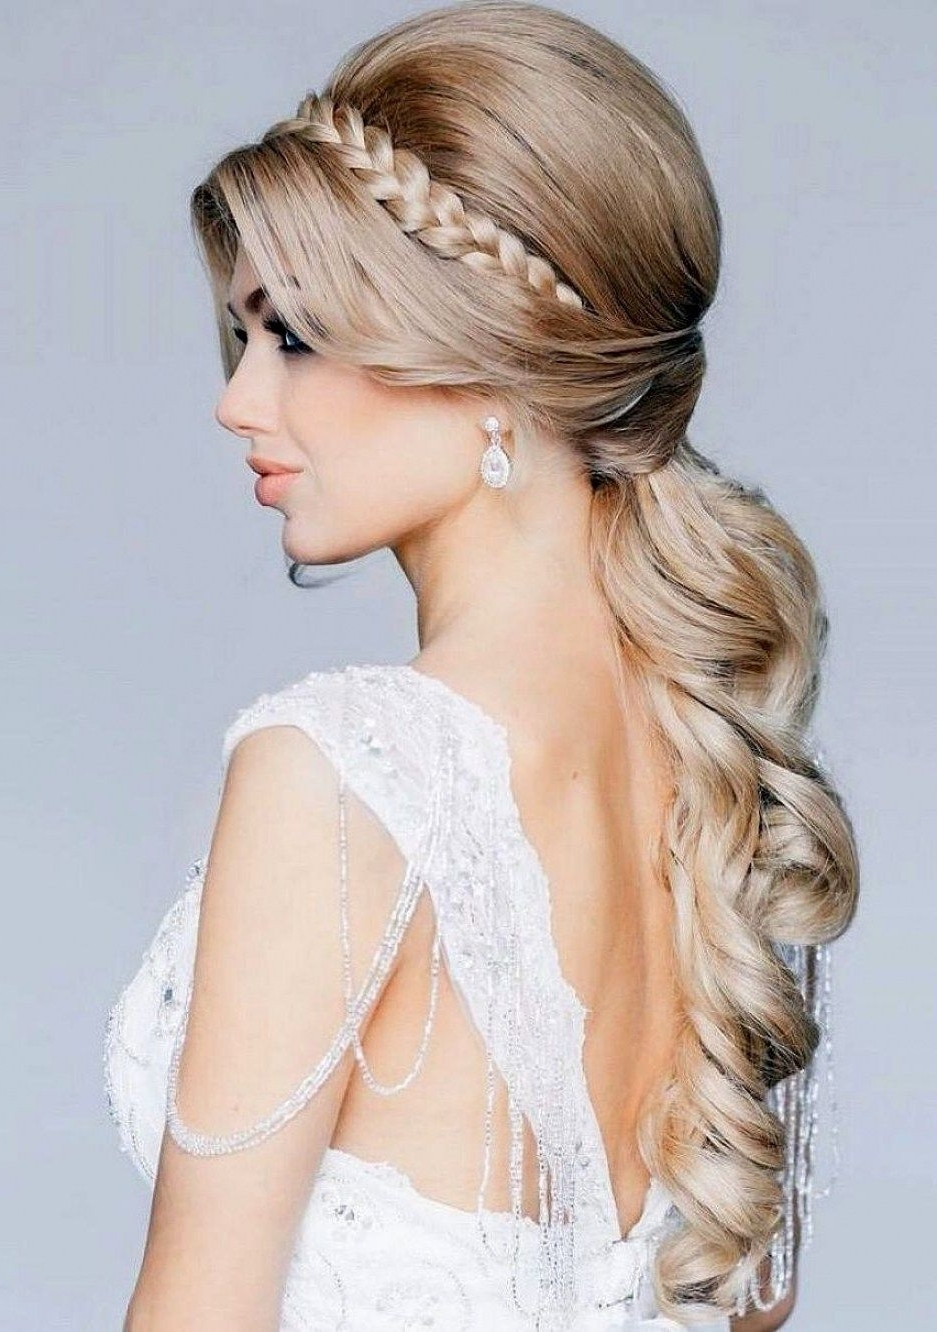 Popular Wedding Hairstyles With Long Hair Down In Wedding Hairstyles Long Hair Down Wedding Party Decoration (View 3 of 15)